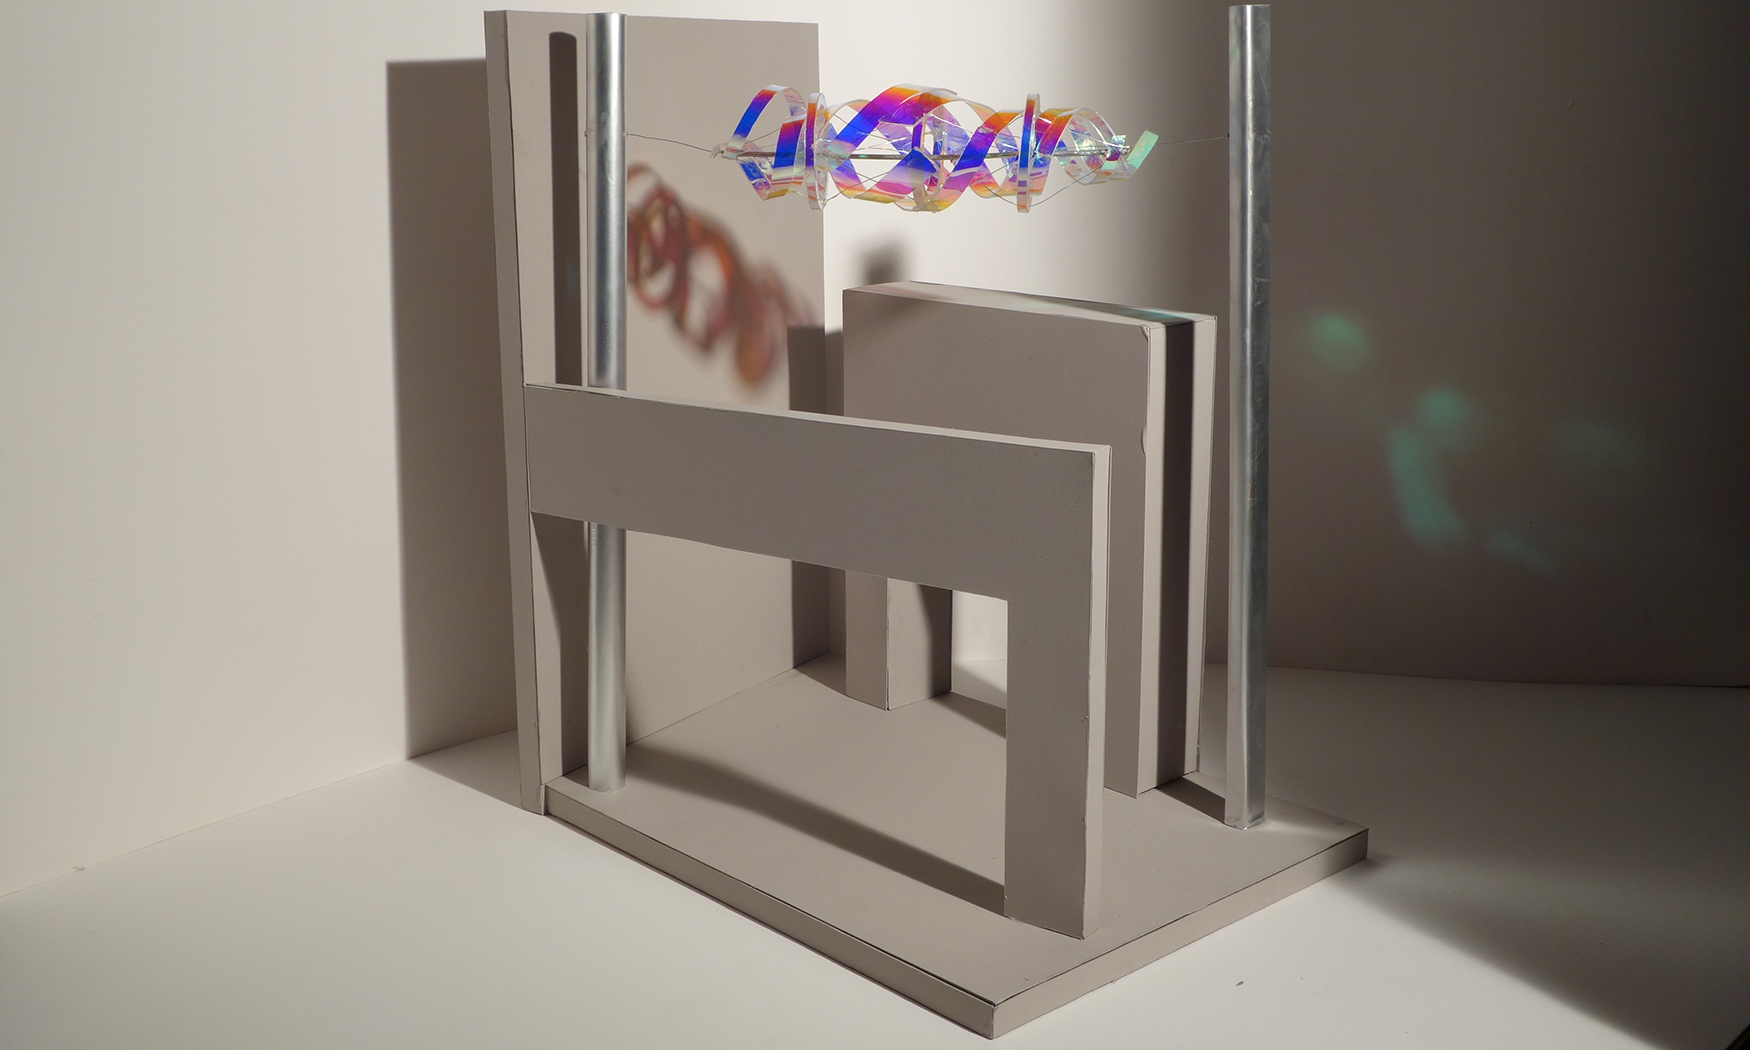 This model shows von Roenn's proposed suspended sculpture for FSU's Aero-Propulsion, Mechatronics and Energy Building.